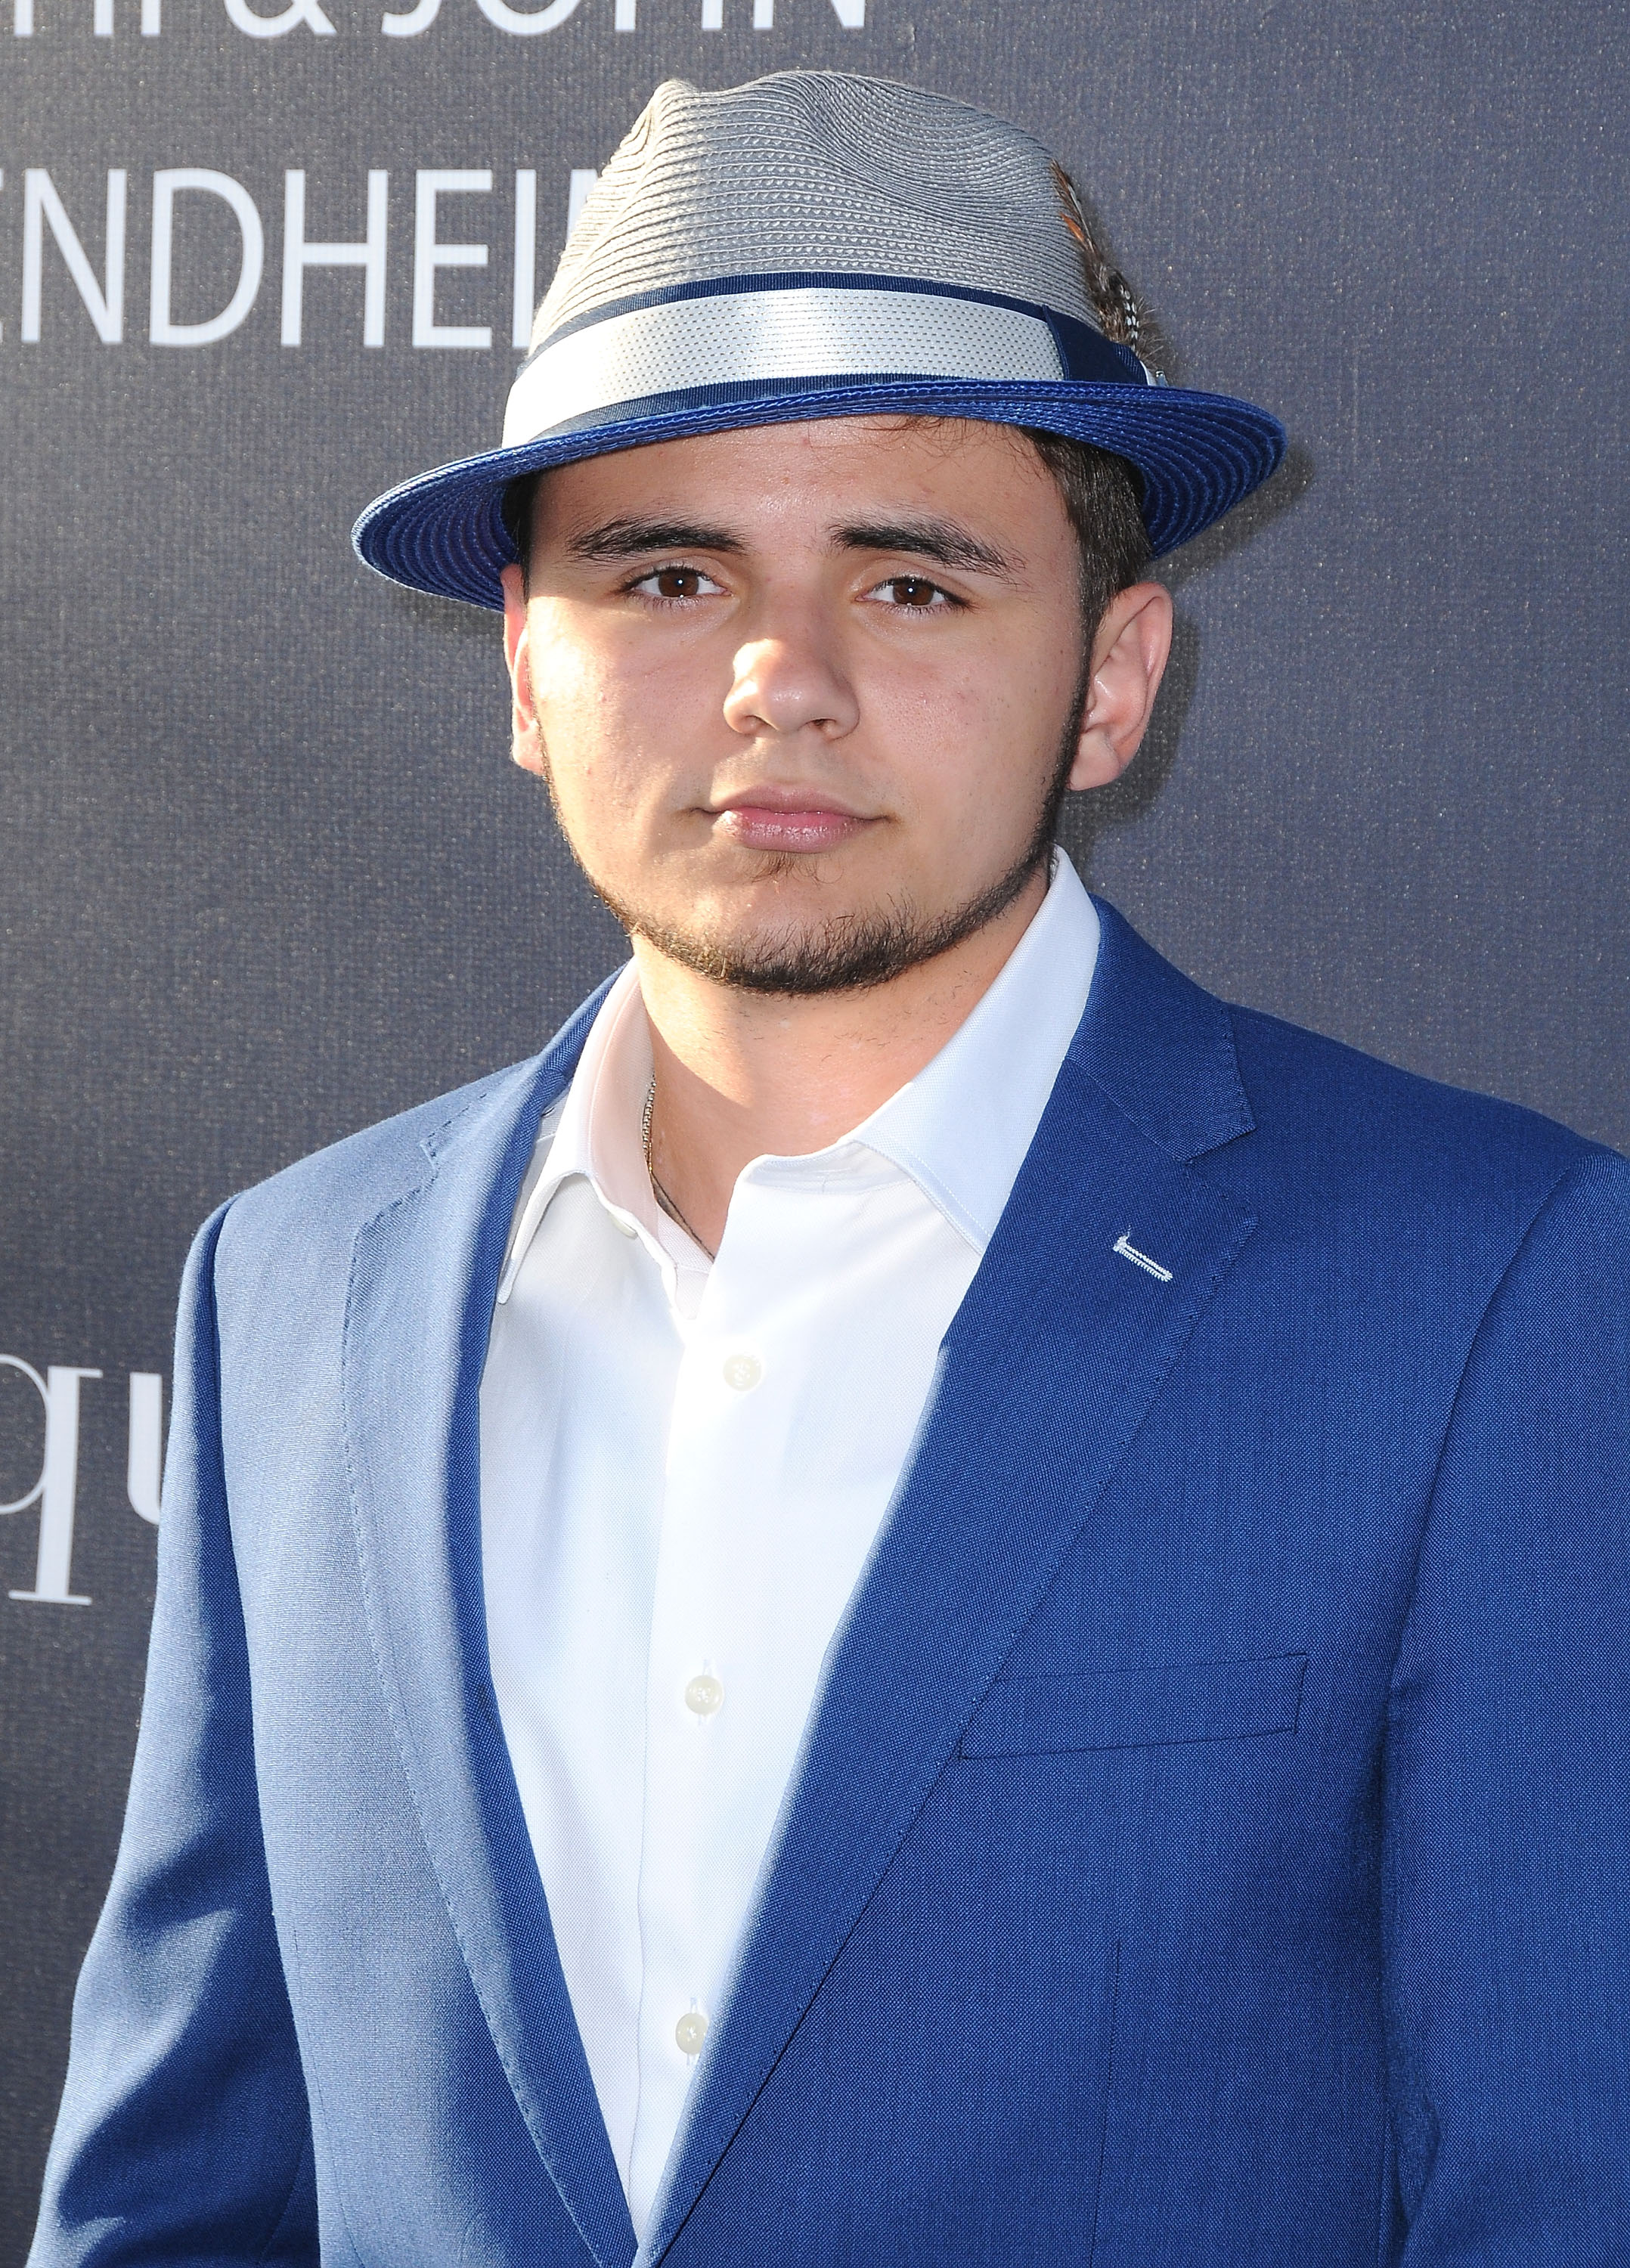 Prince Jackson attends Los Angeles Dodgers Foundation's 3rd Annual Blue Diamond Gala at Dodger Stadium on June 8, 2017 in Los Angeles, California | Photo: Getty Images